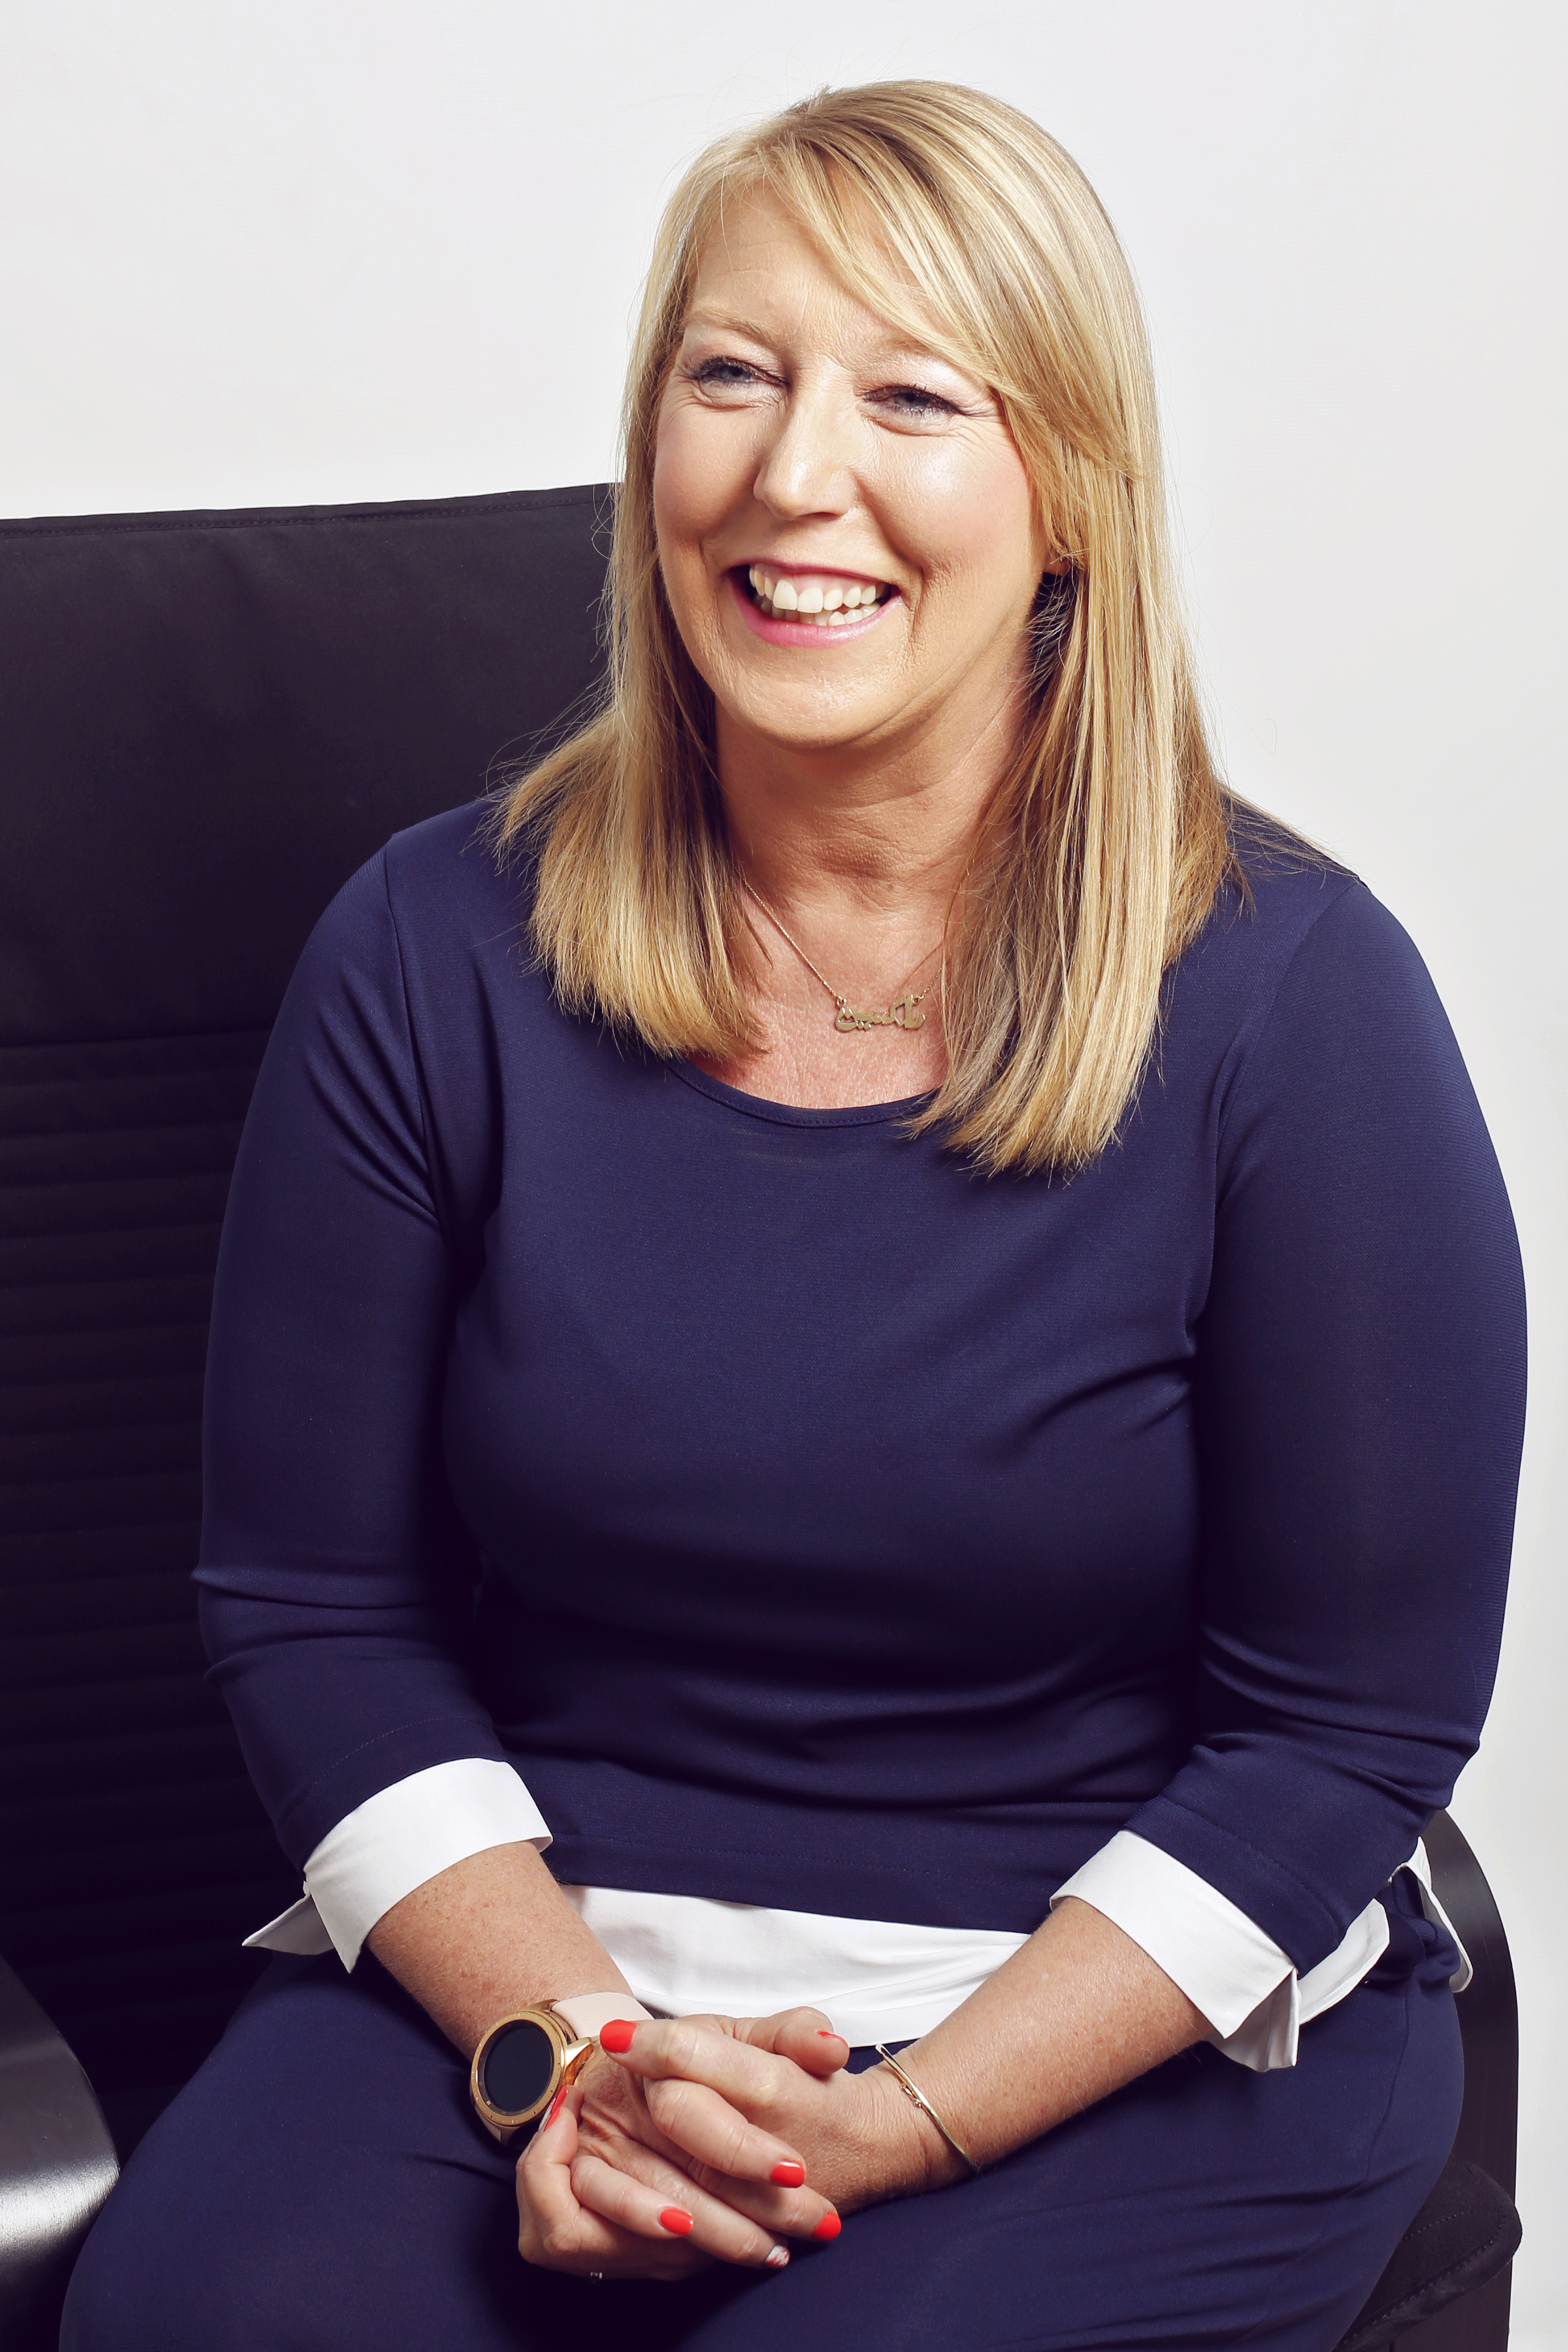 Head shots and business portraits | Business branding photography in Berkshire